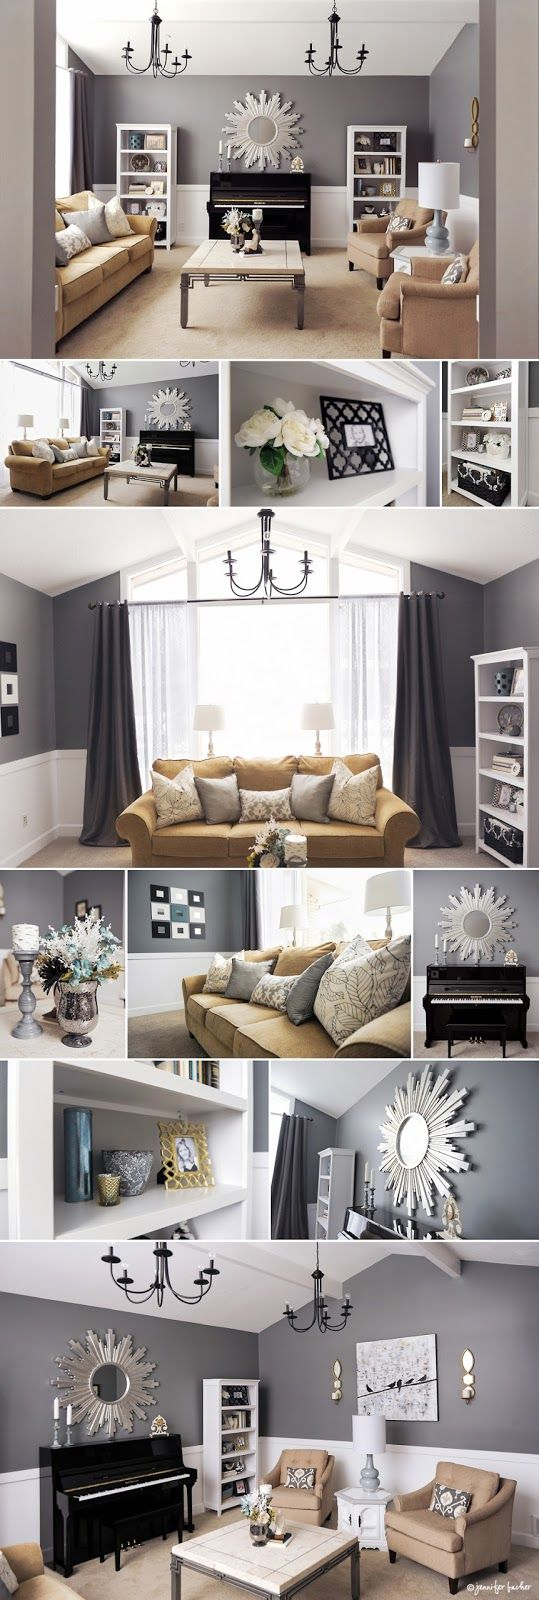 Ballard design gardner village down to earth gray Black white grey and gold living room